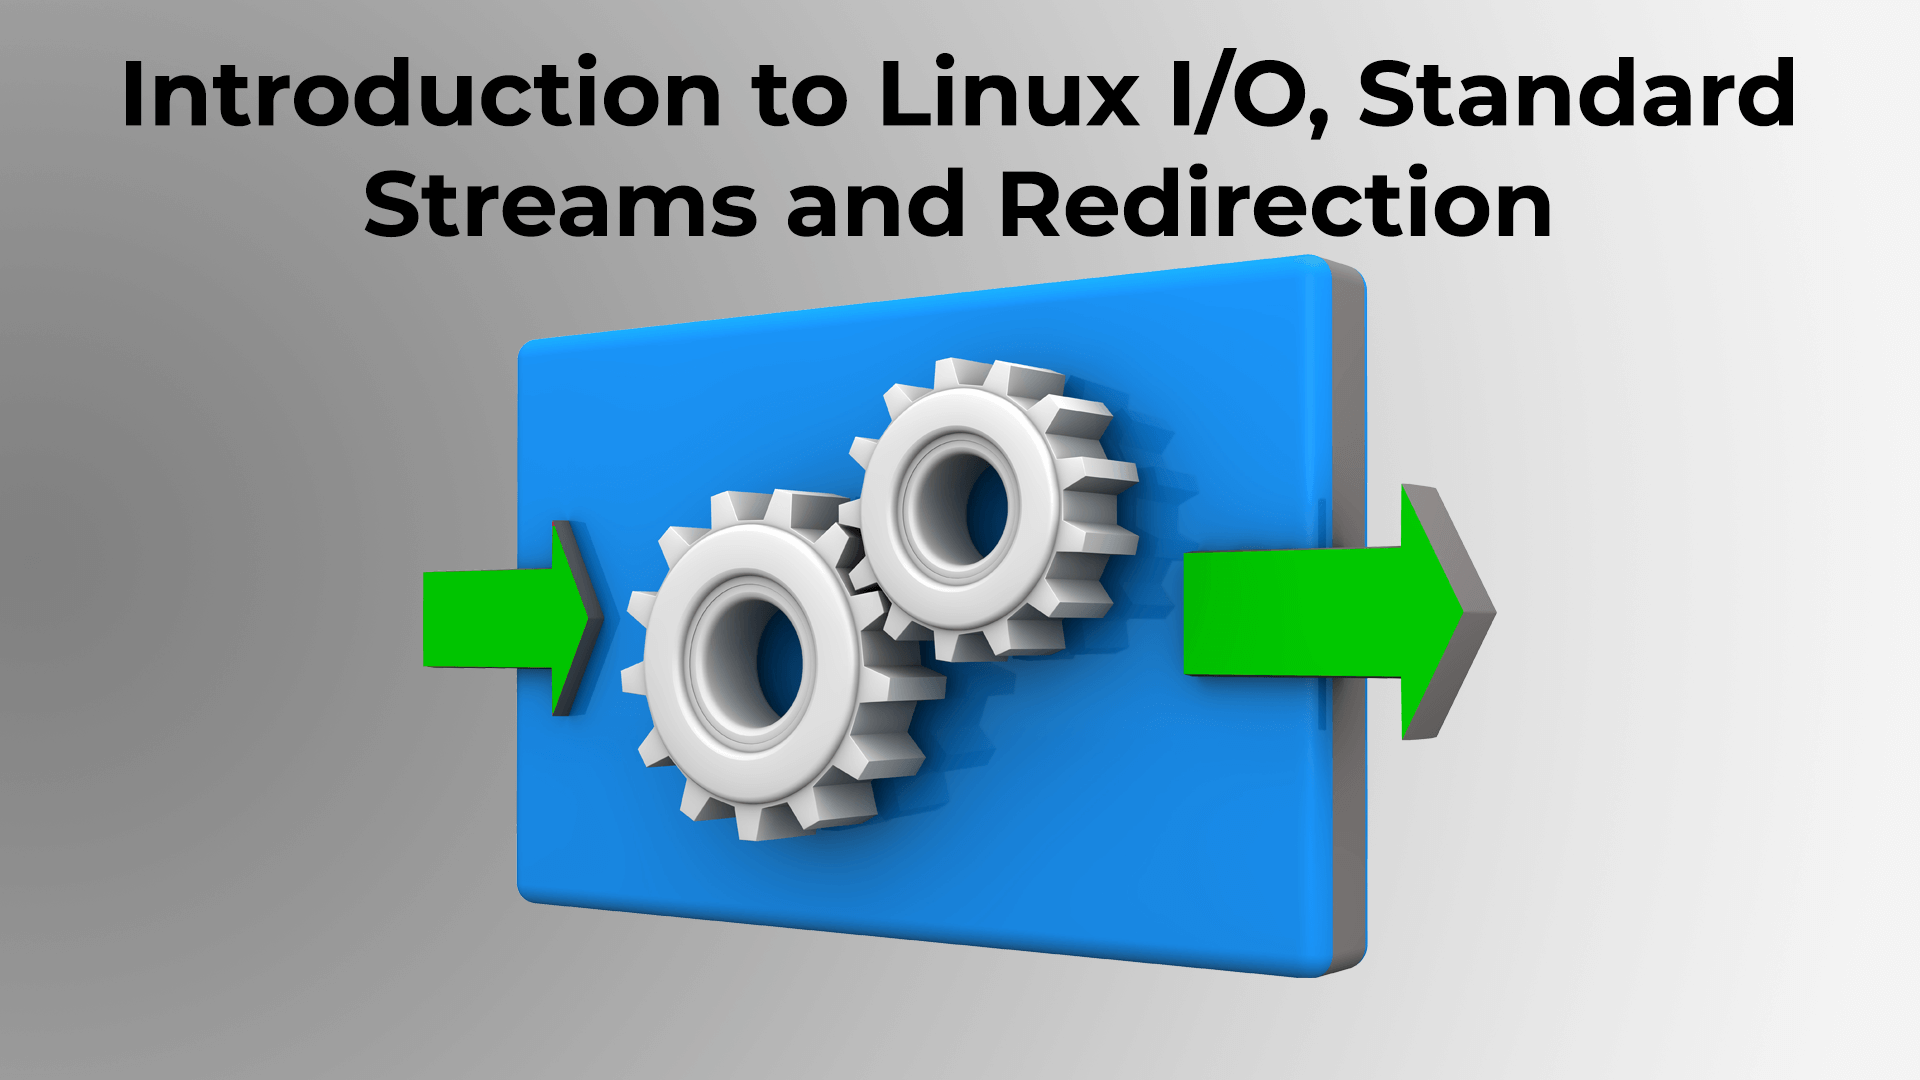 Linux IO, Standard Streams, and Redirection. - Putorius